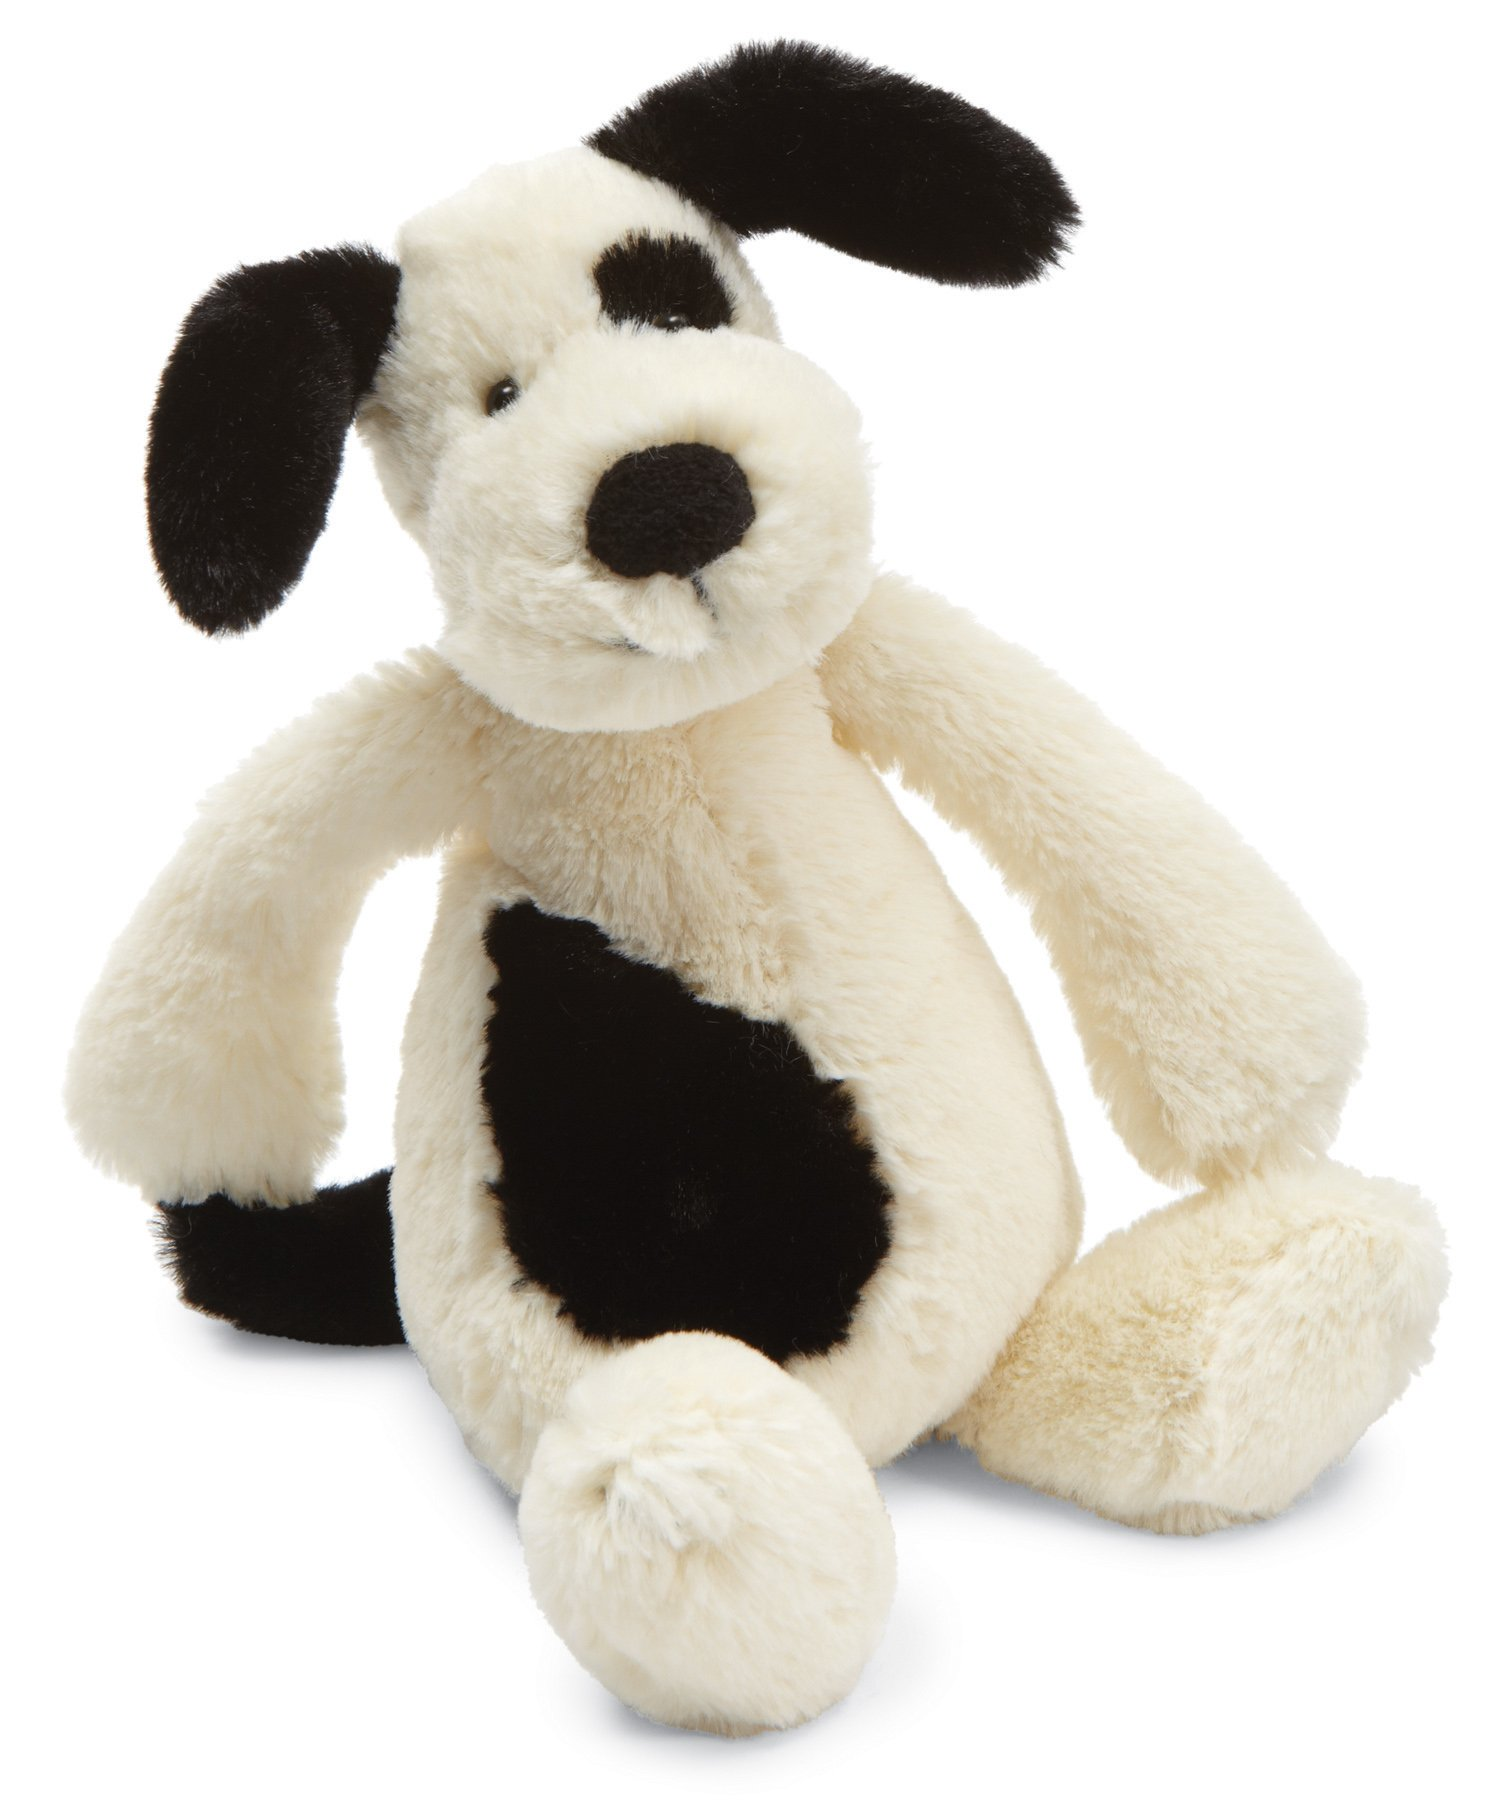 Jellycat Bashful Black and Cream Puppy, Small, 7 inches